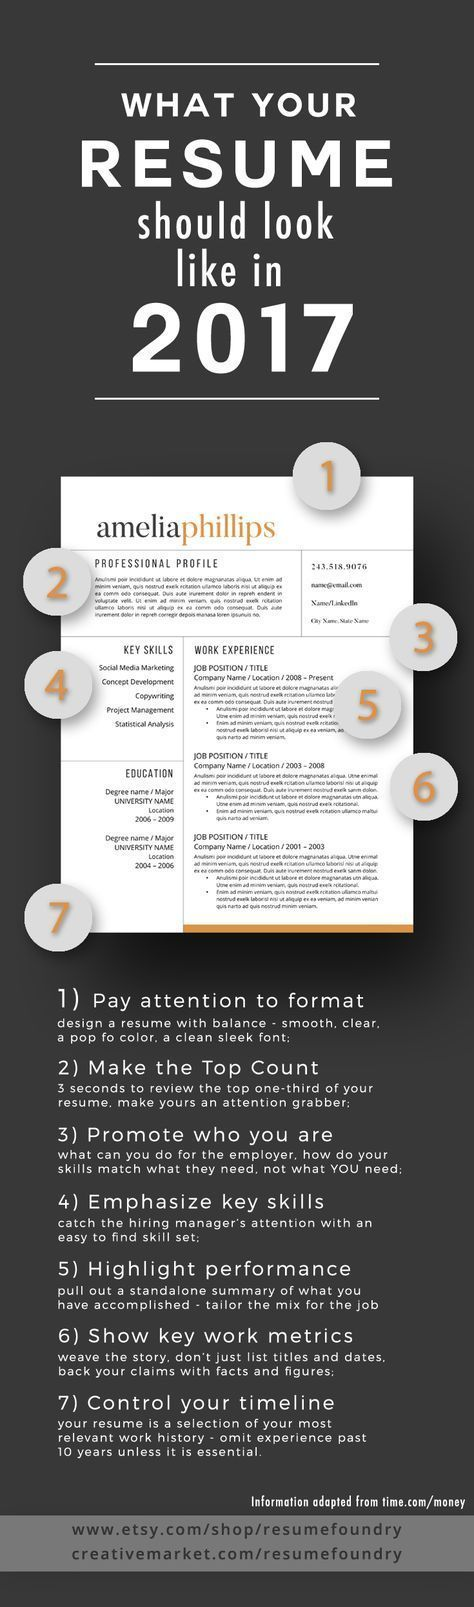 7 tips to transform your resume to 2017 Check out the article at - check my resume